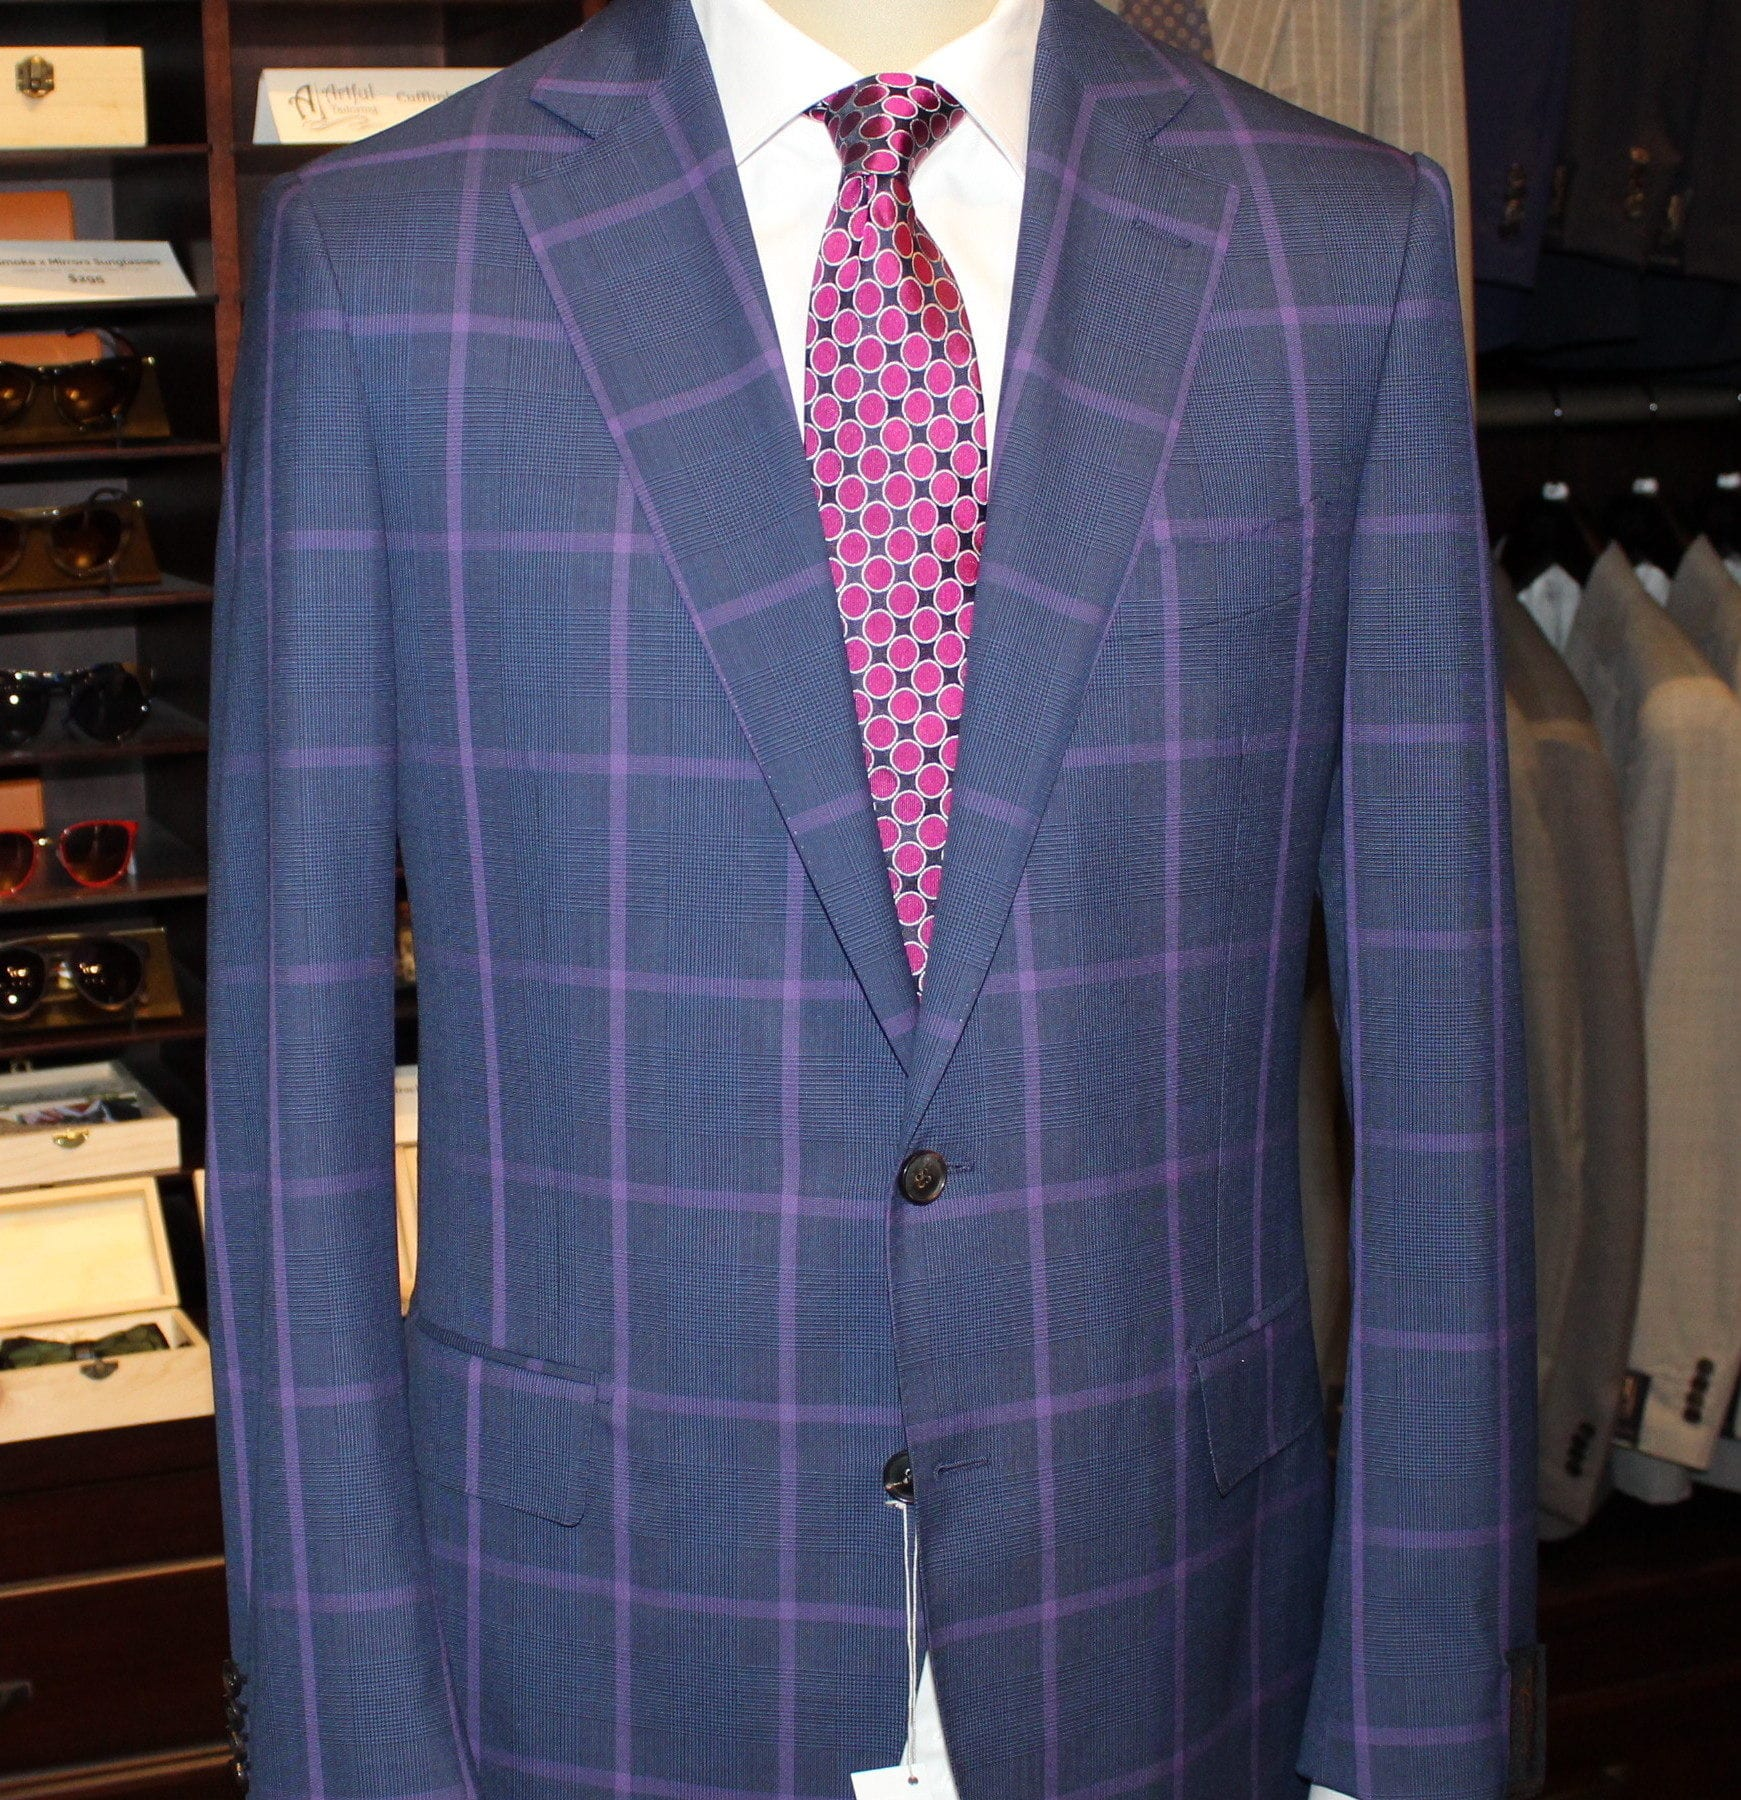 Winning Suit And Tie Combinations Artful Tailoring